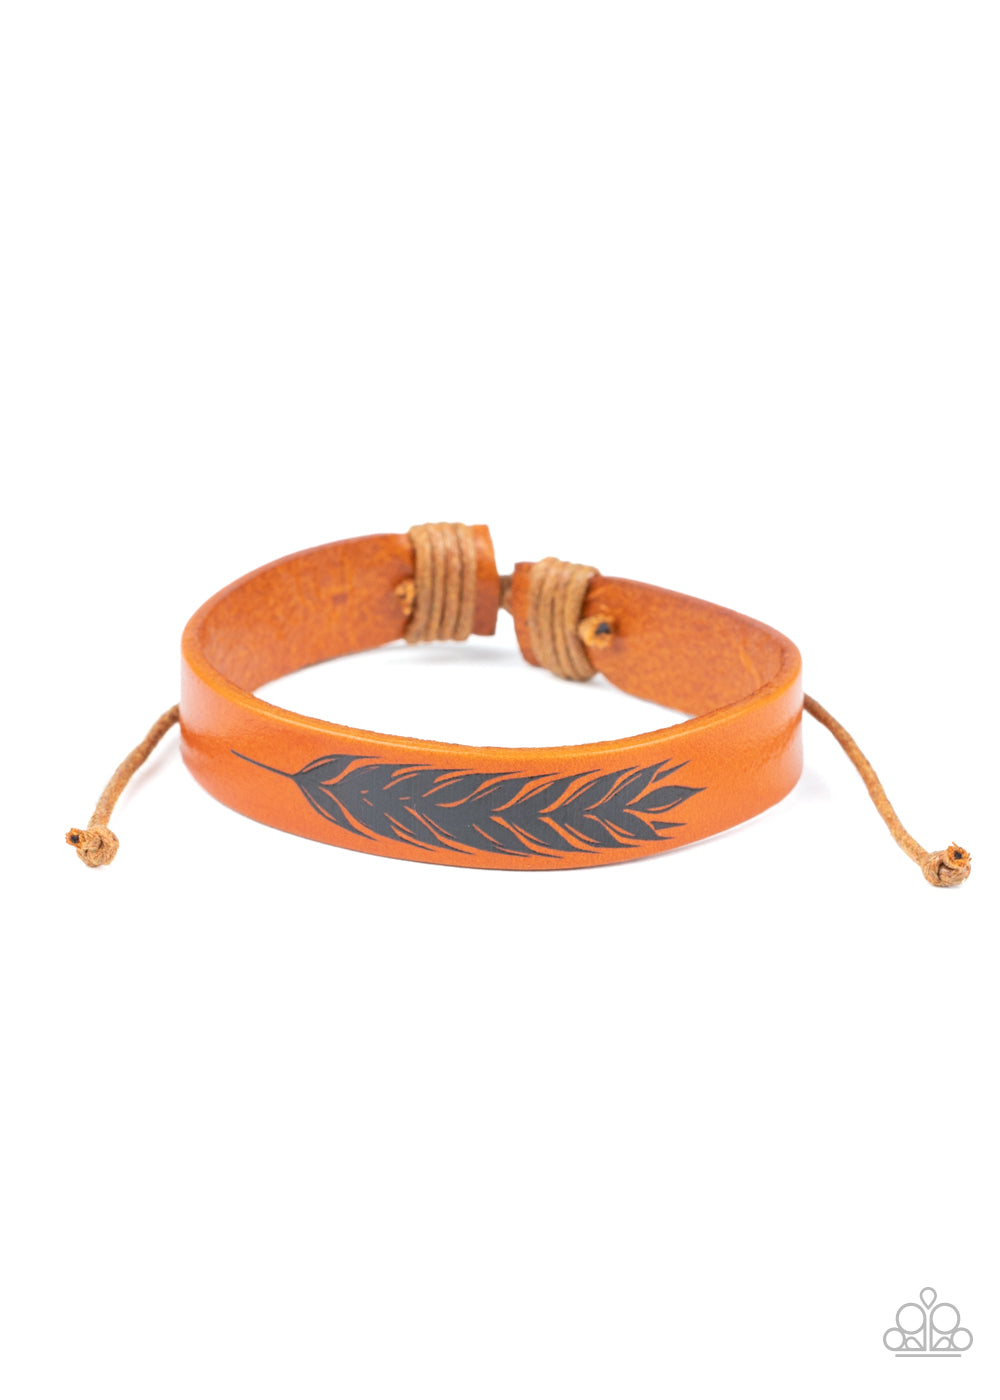 This QUILL All Be Yours Brown Bracelet